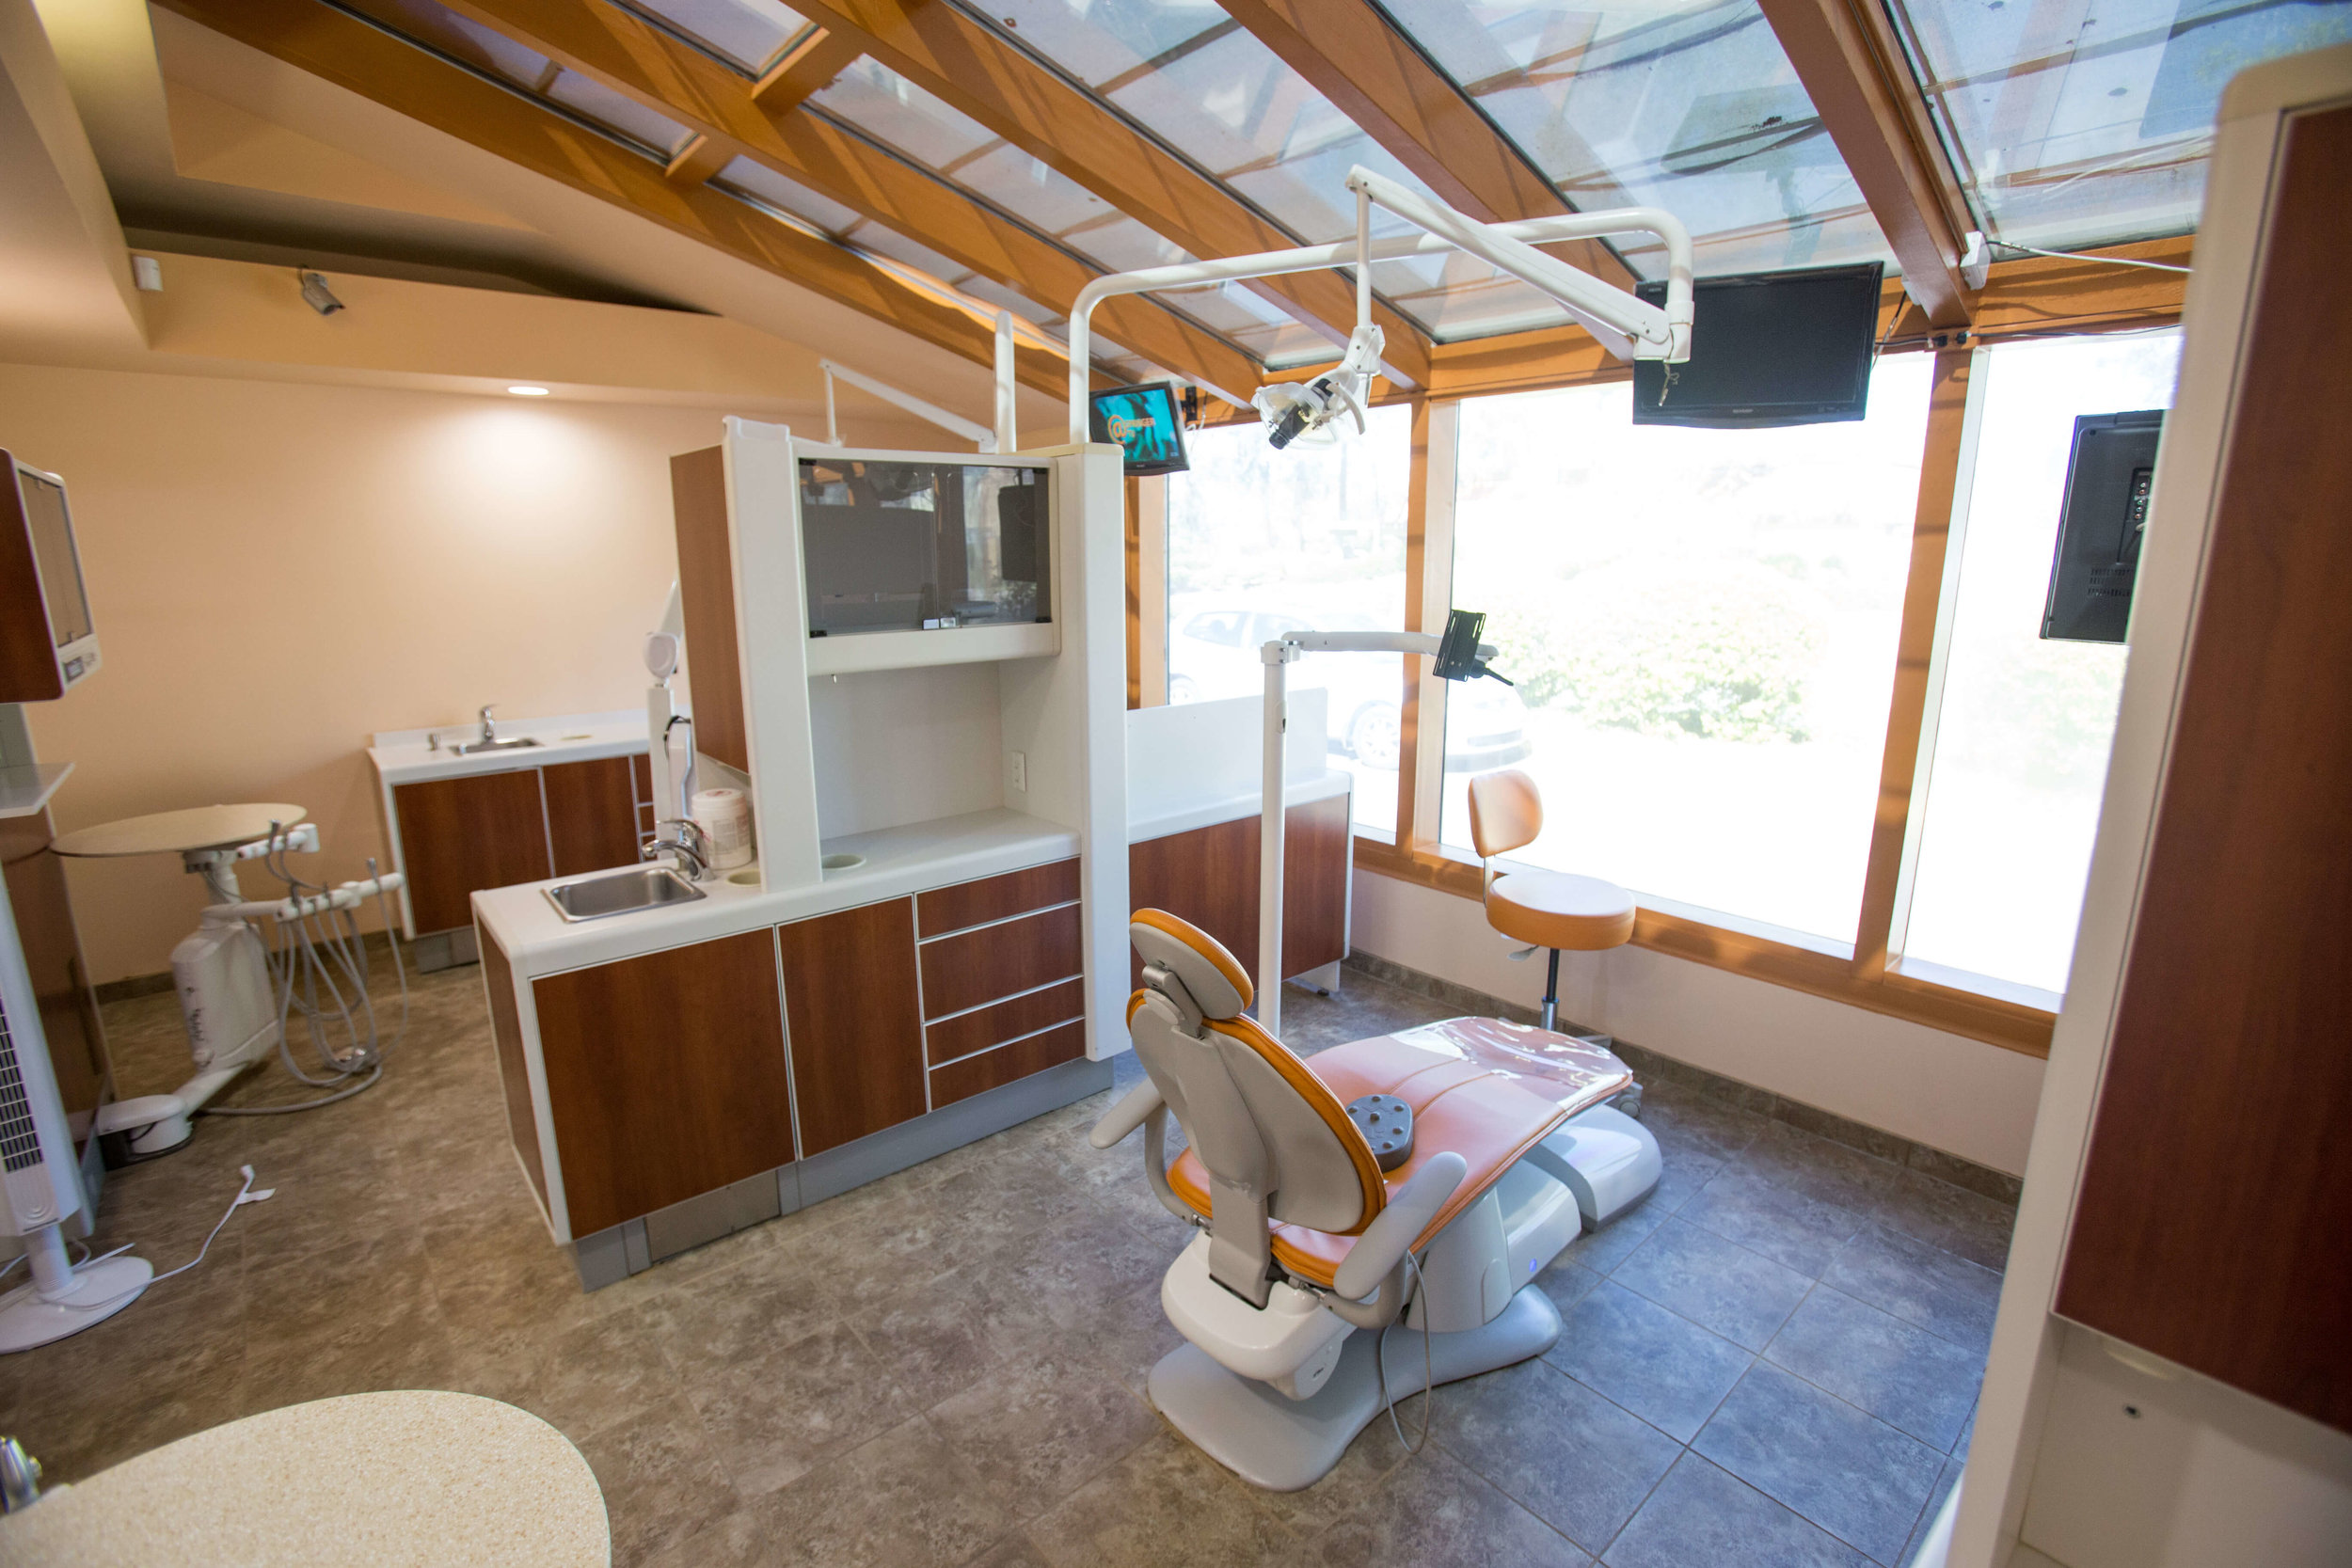 Town Center Dentistry in Rancho Bernardo